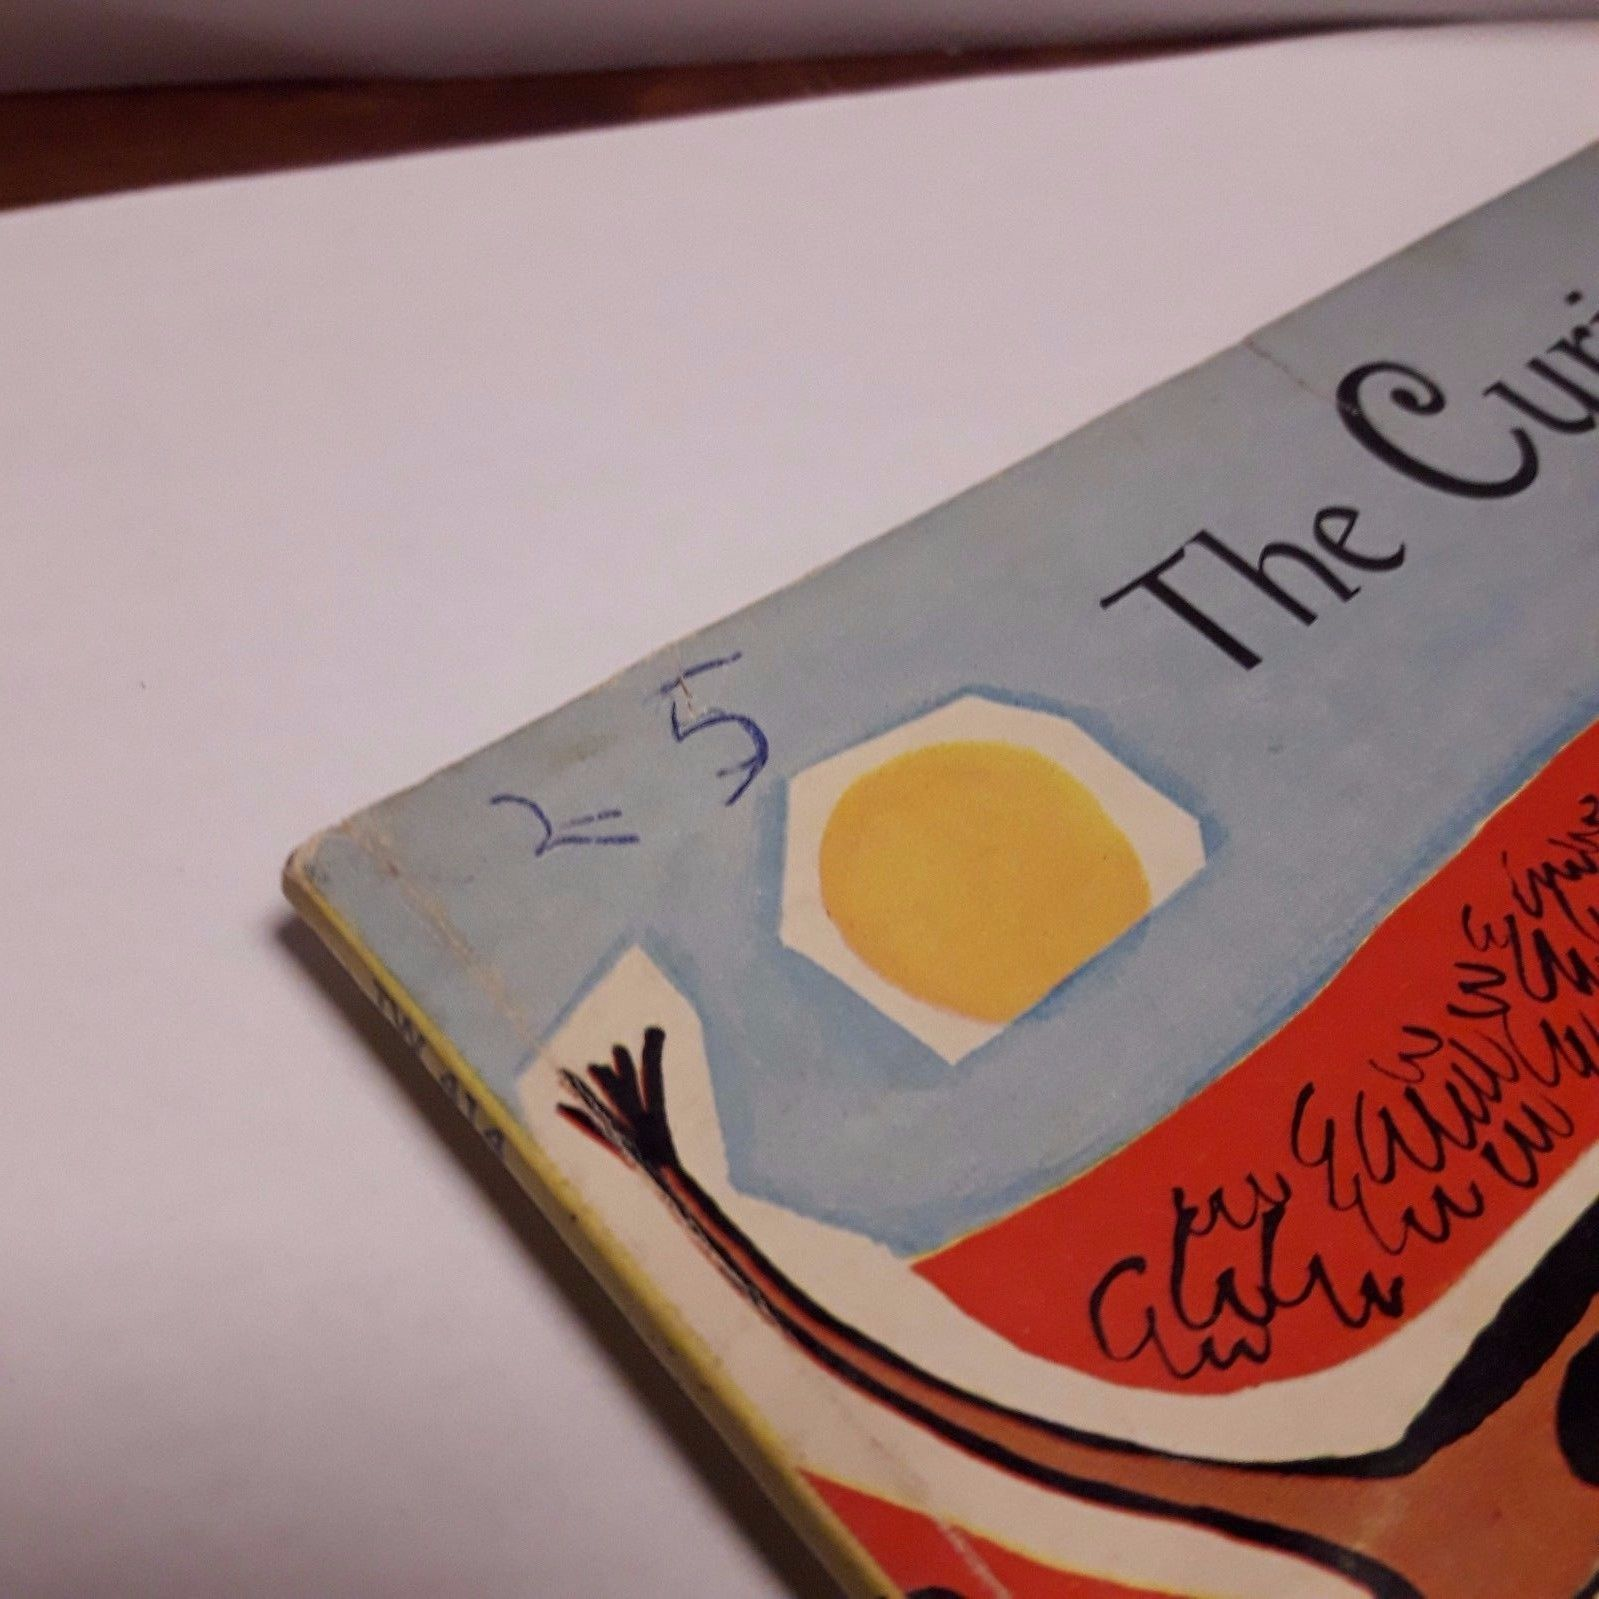 Vintage 1960 The Curious Cow Esther Meeks Picture Book PB 4th Scholastic TW414